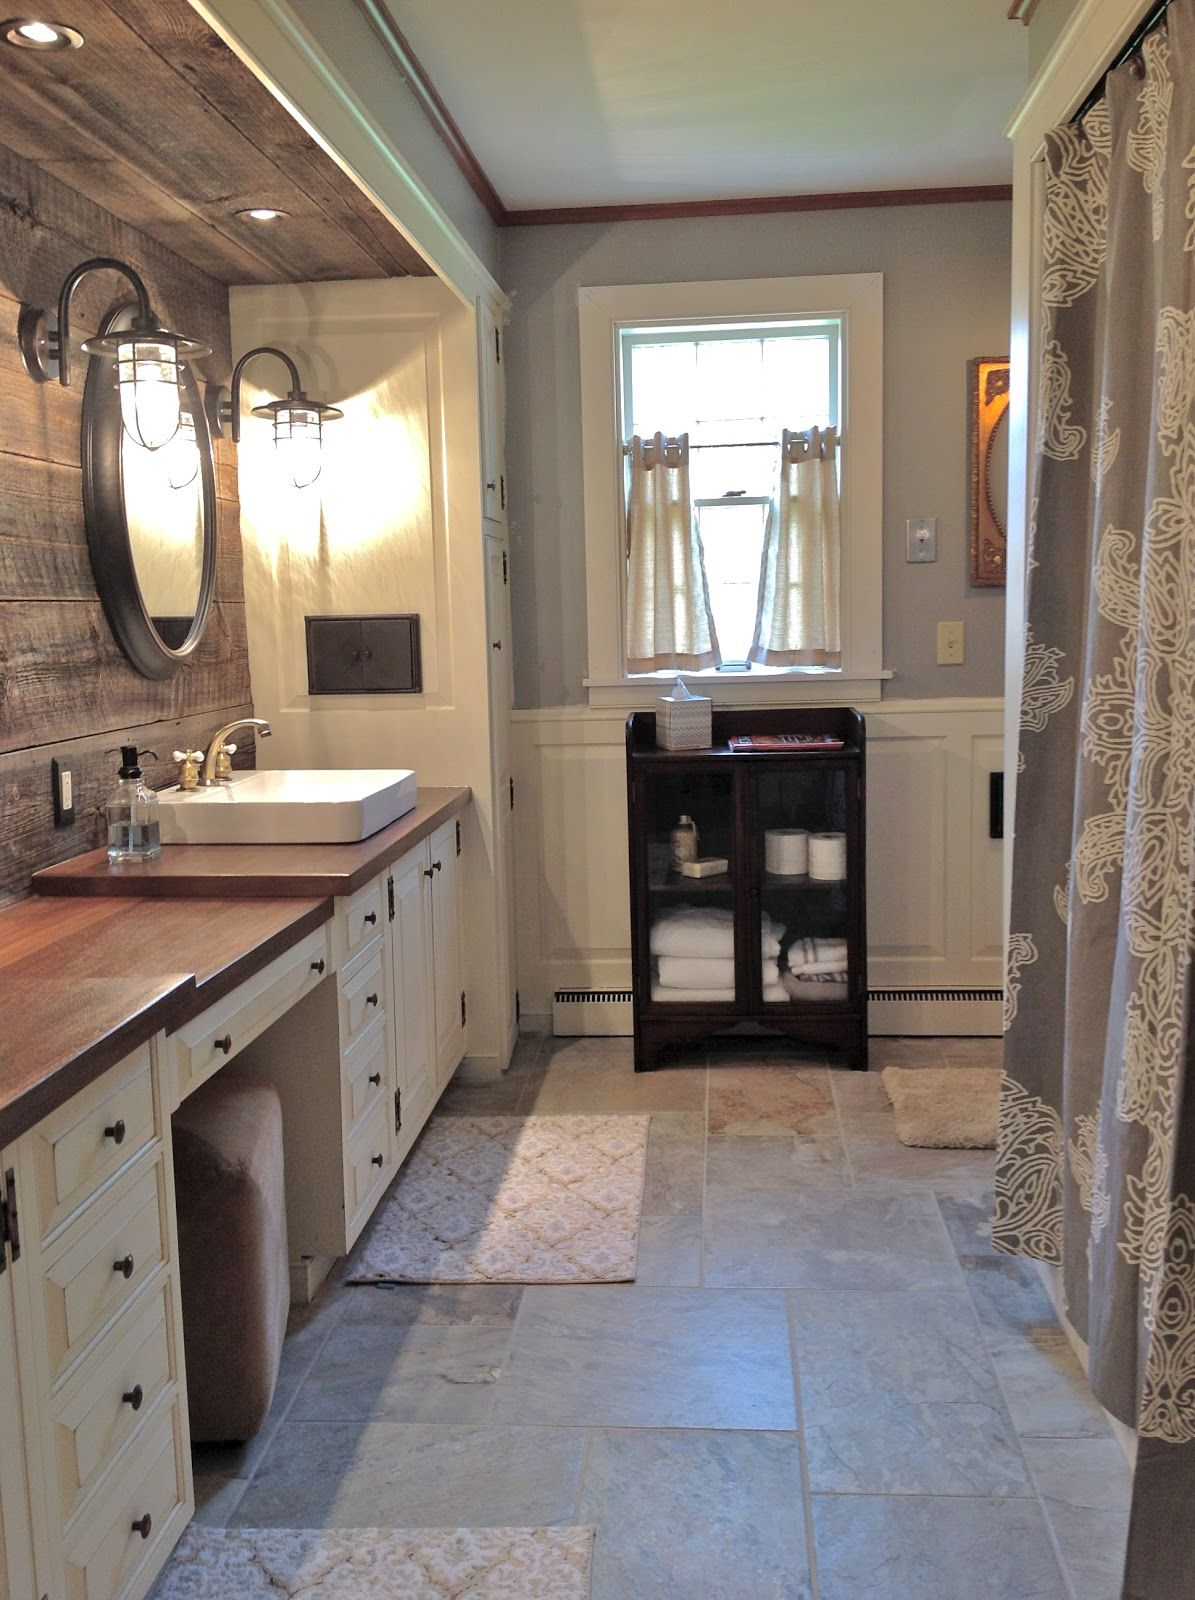 Bathroom Remodeling Materials unusual materials used in this gorgeous farmhouse bathroom